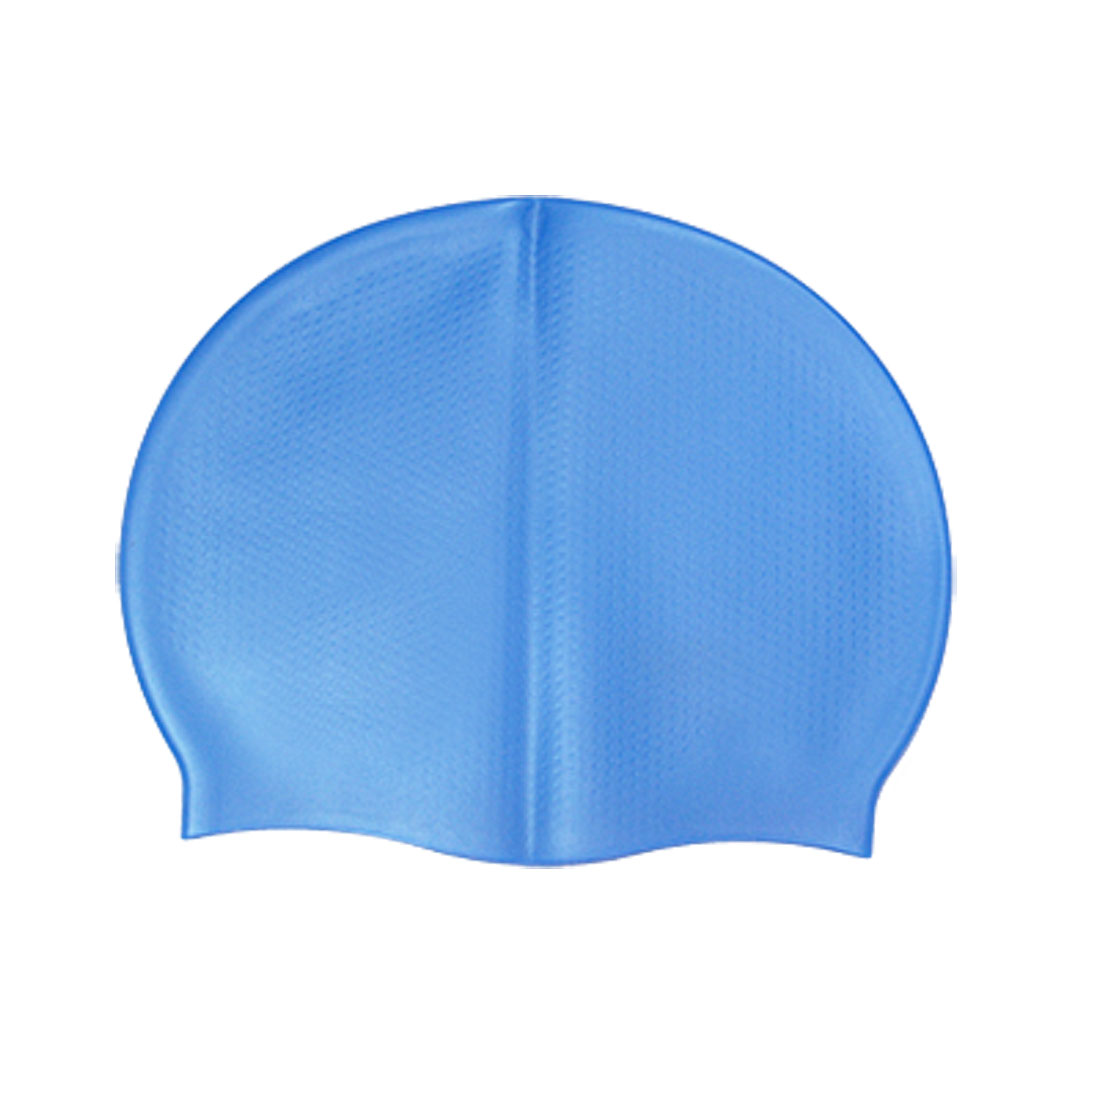 Sky Blue Swimming Pool Swim Antislip Silicone Skin Cap